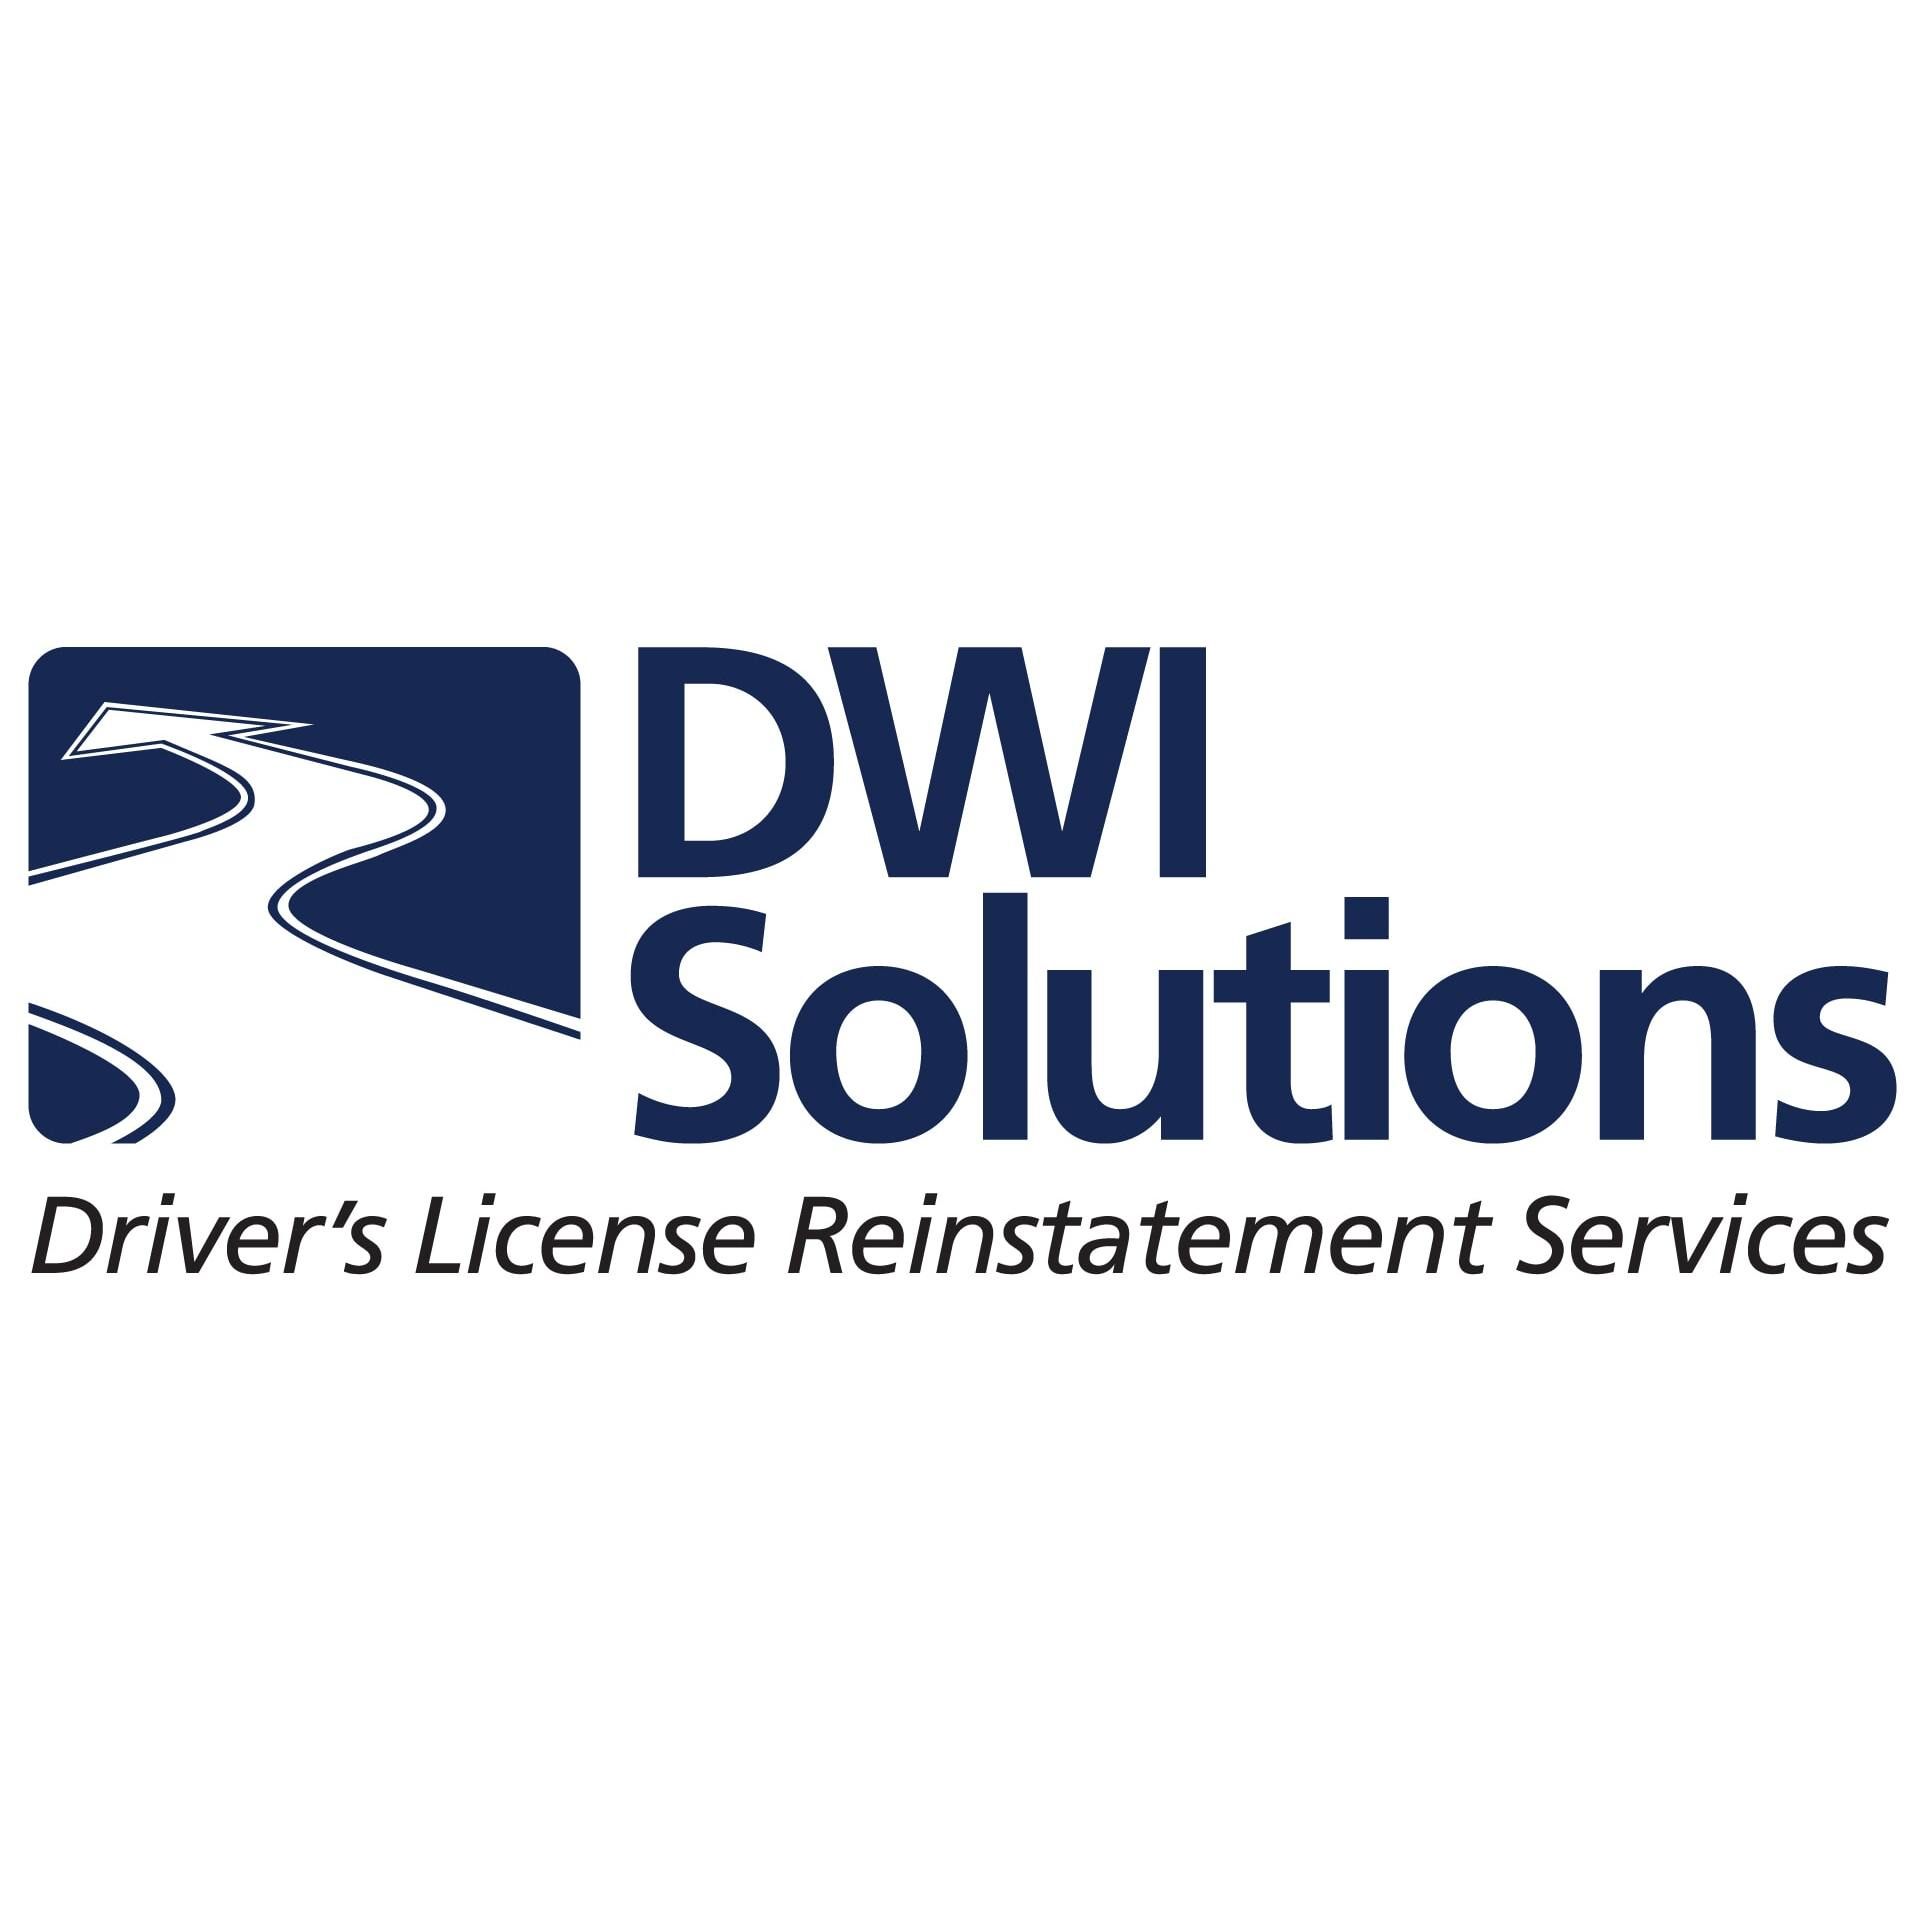 DWI Solutions